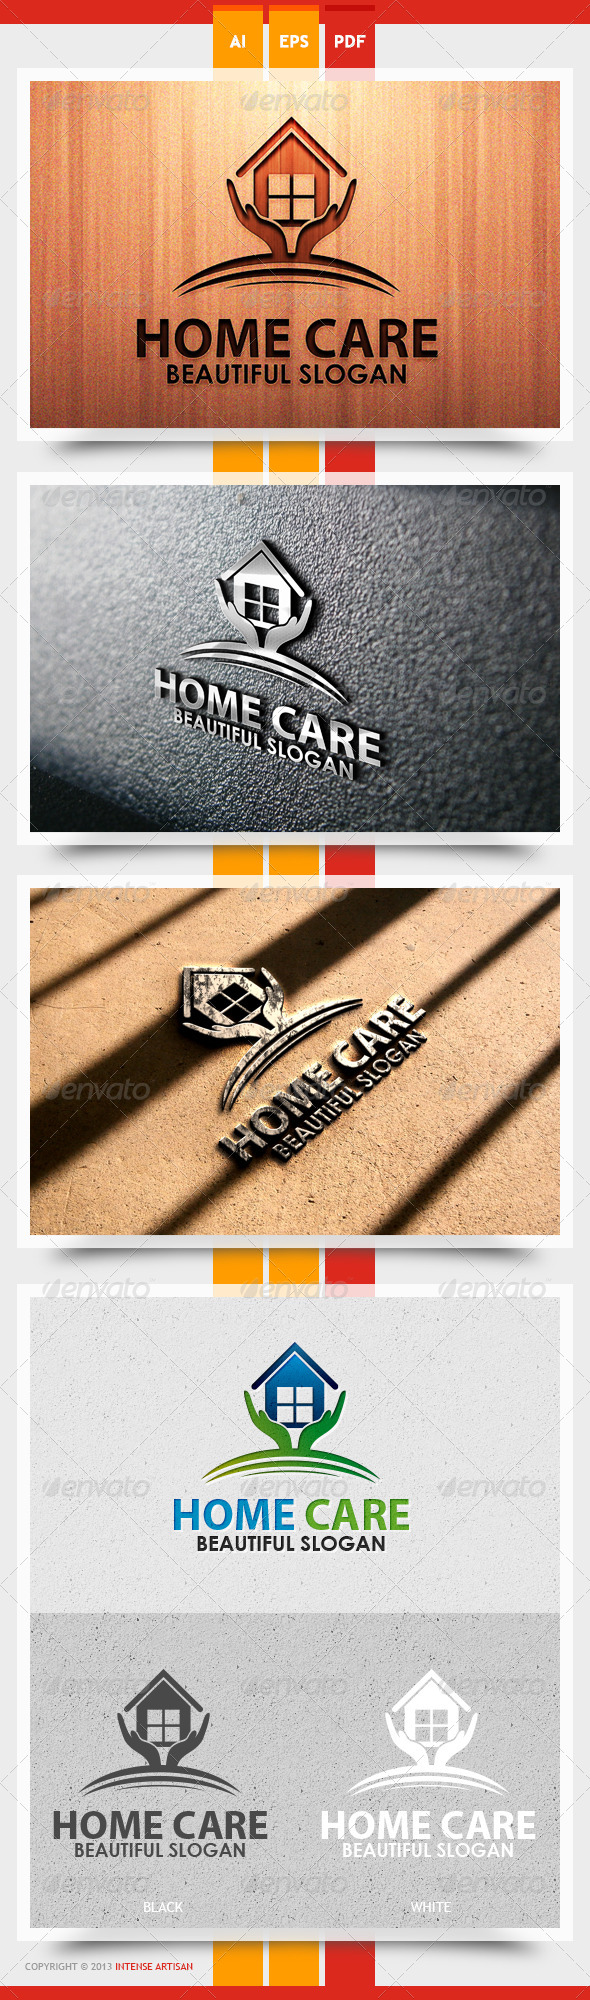 Home Care Logo Template - Buildings Logo Templates